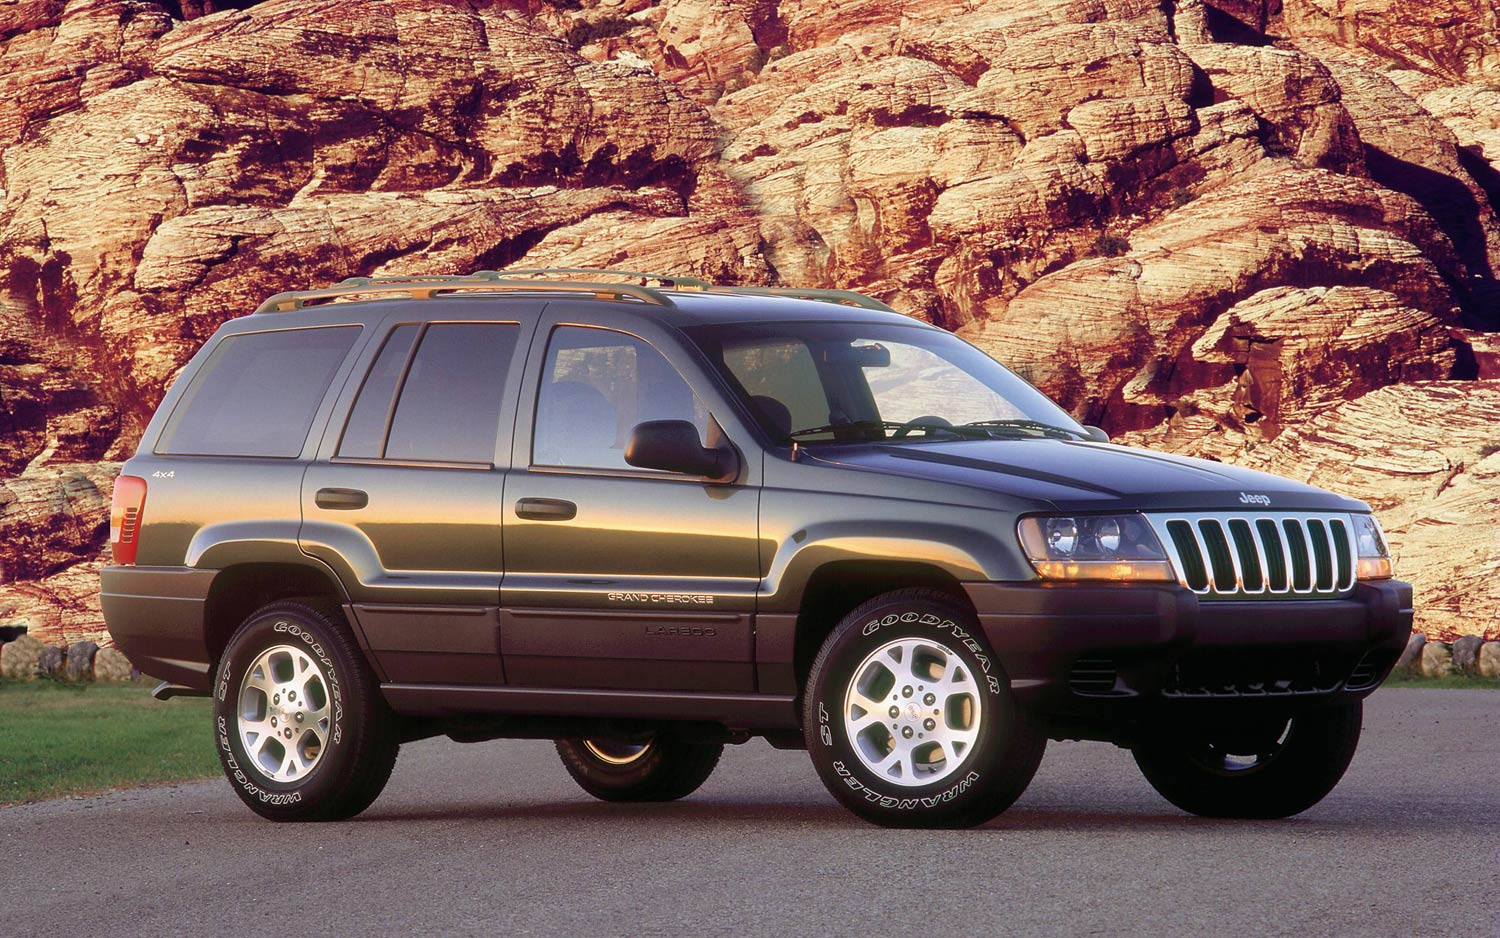 2000 jeep cherokee ignition wiring diagram bohr worksheet information and photos zombiedrive 14